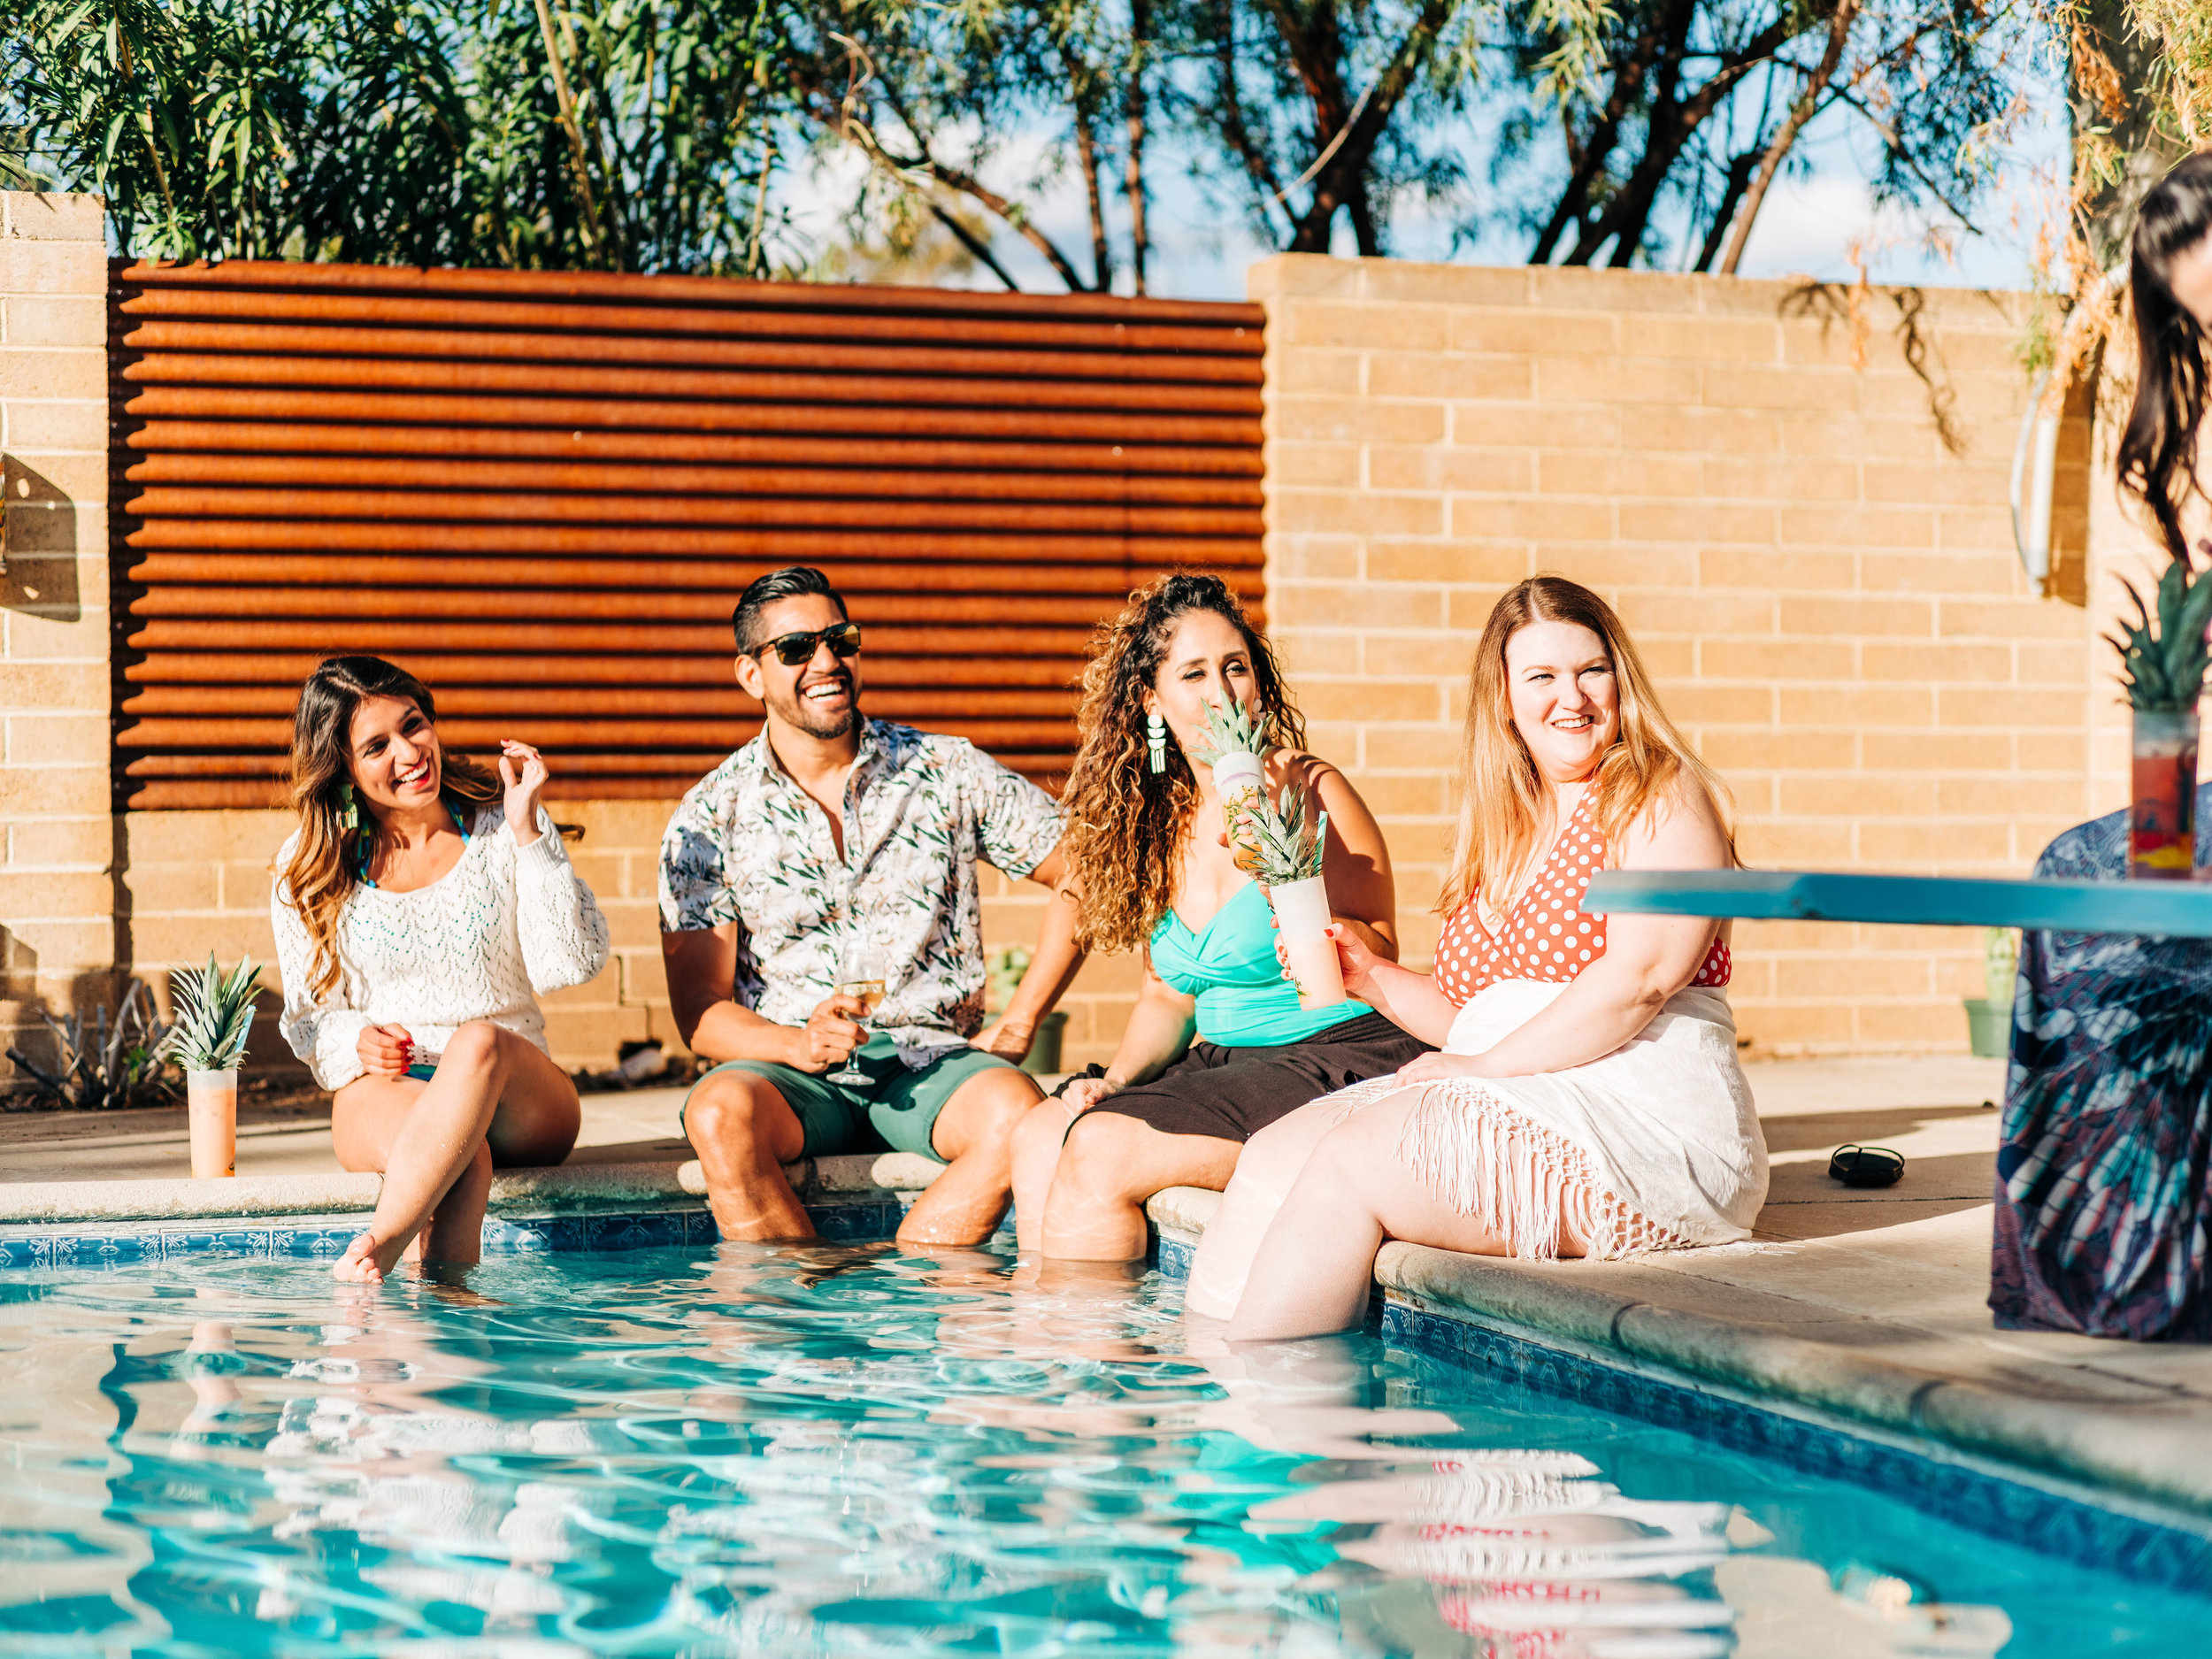 Andy-Shepard-Photography-Tucson-Pool-Party-65.jpg